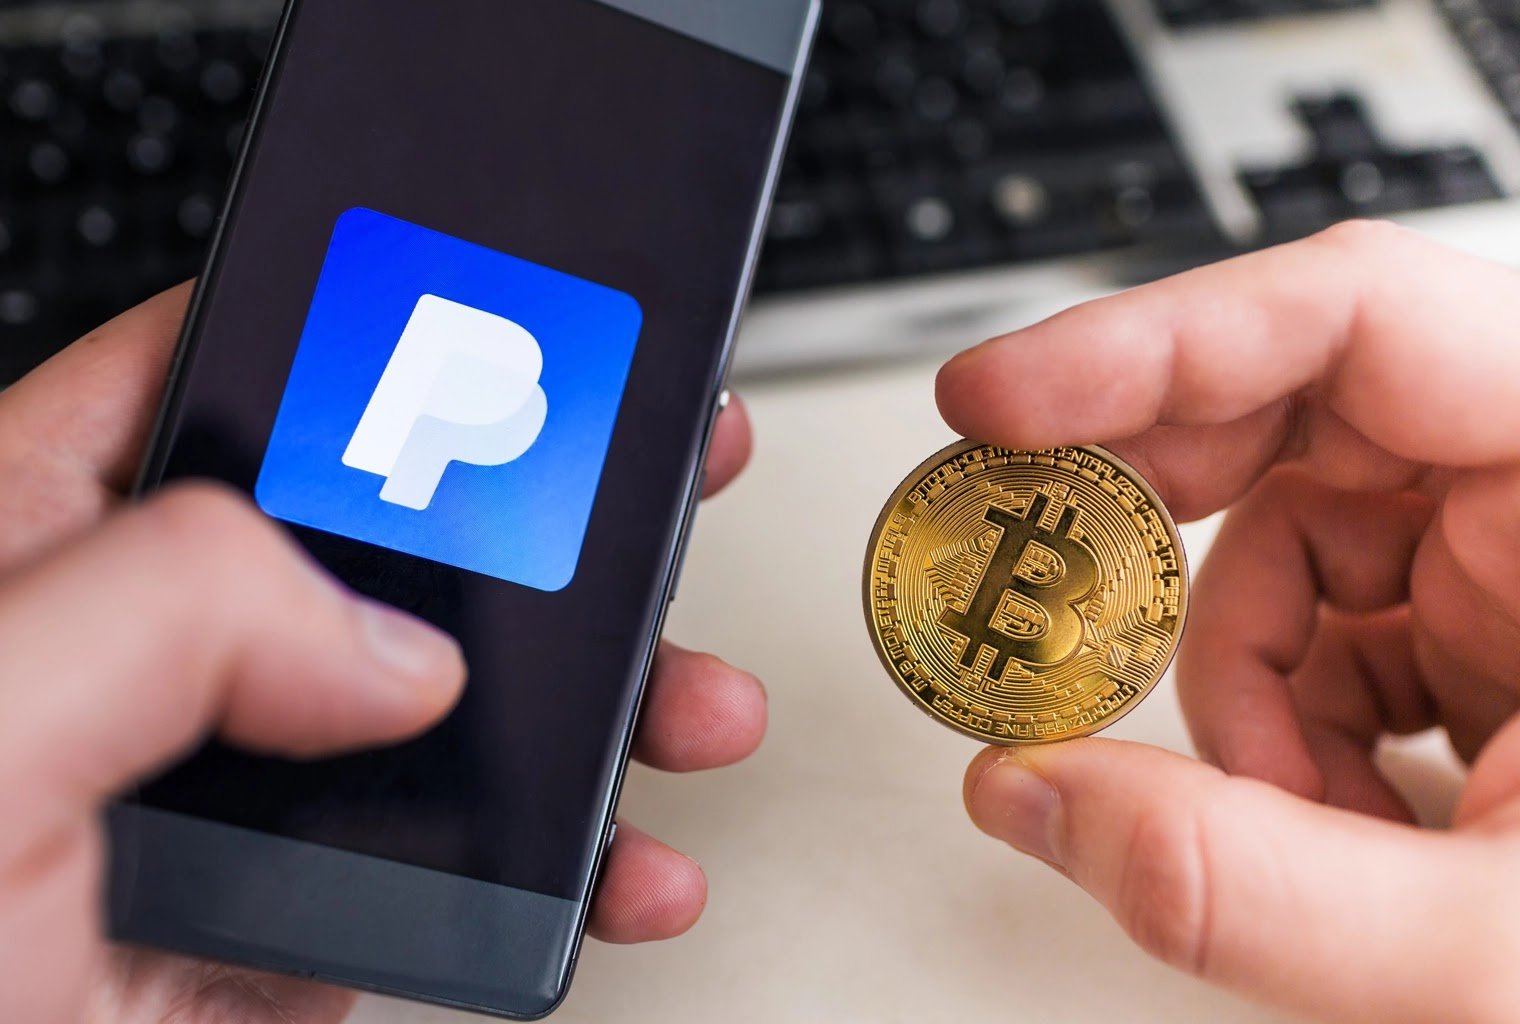 PayPal Announced to Let Customers Buy & Sell Cryptocurrencies